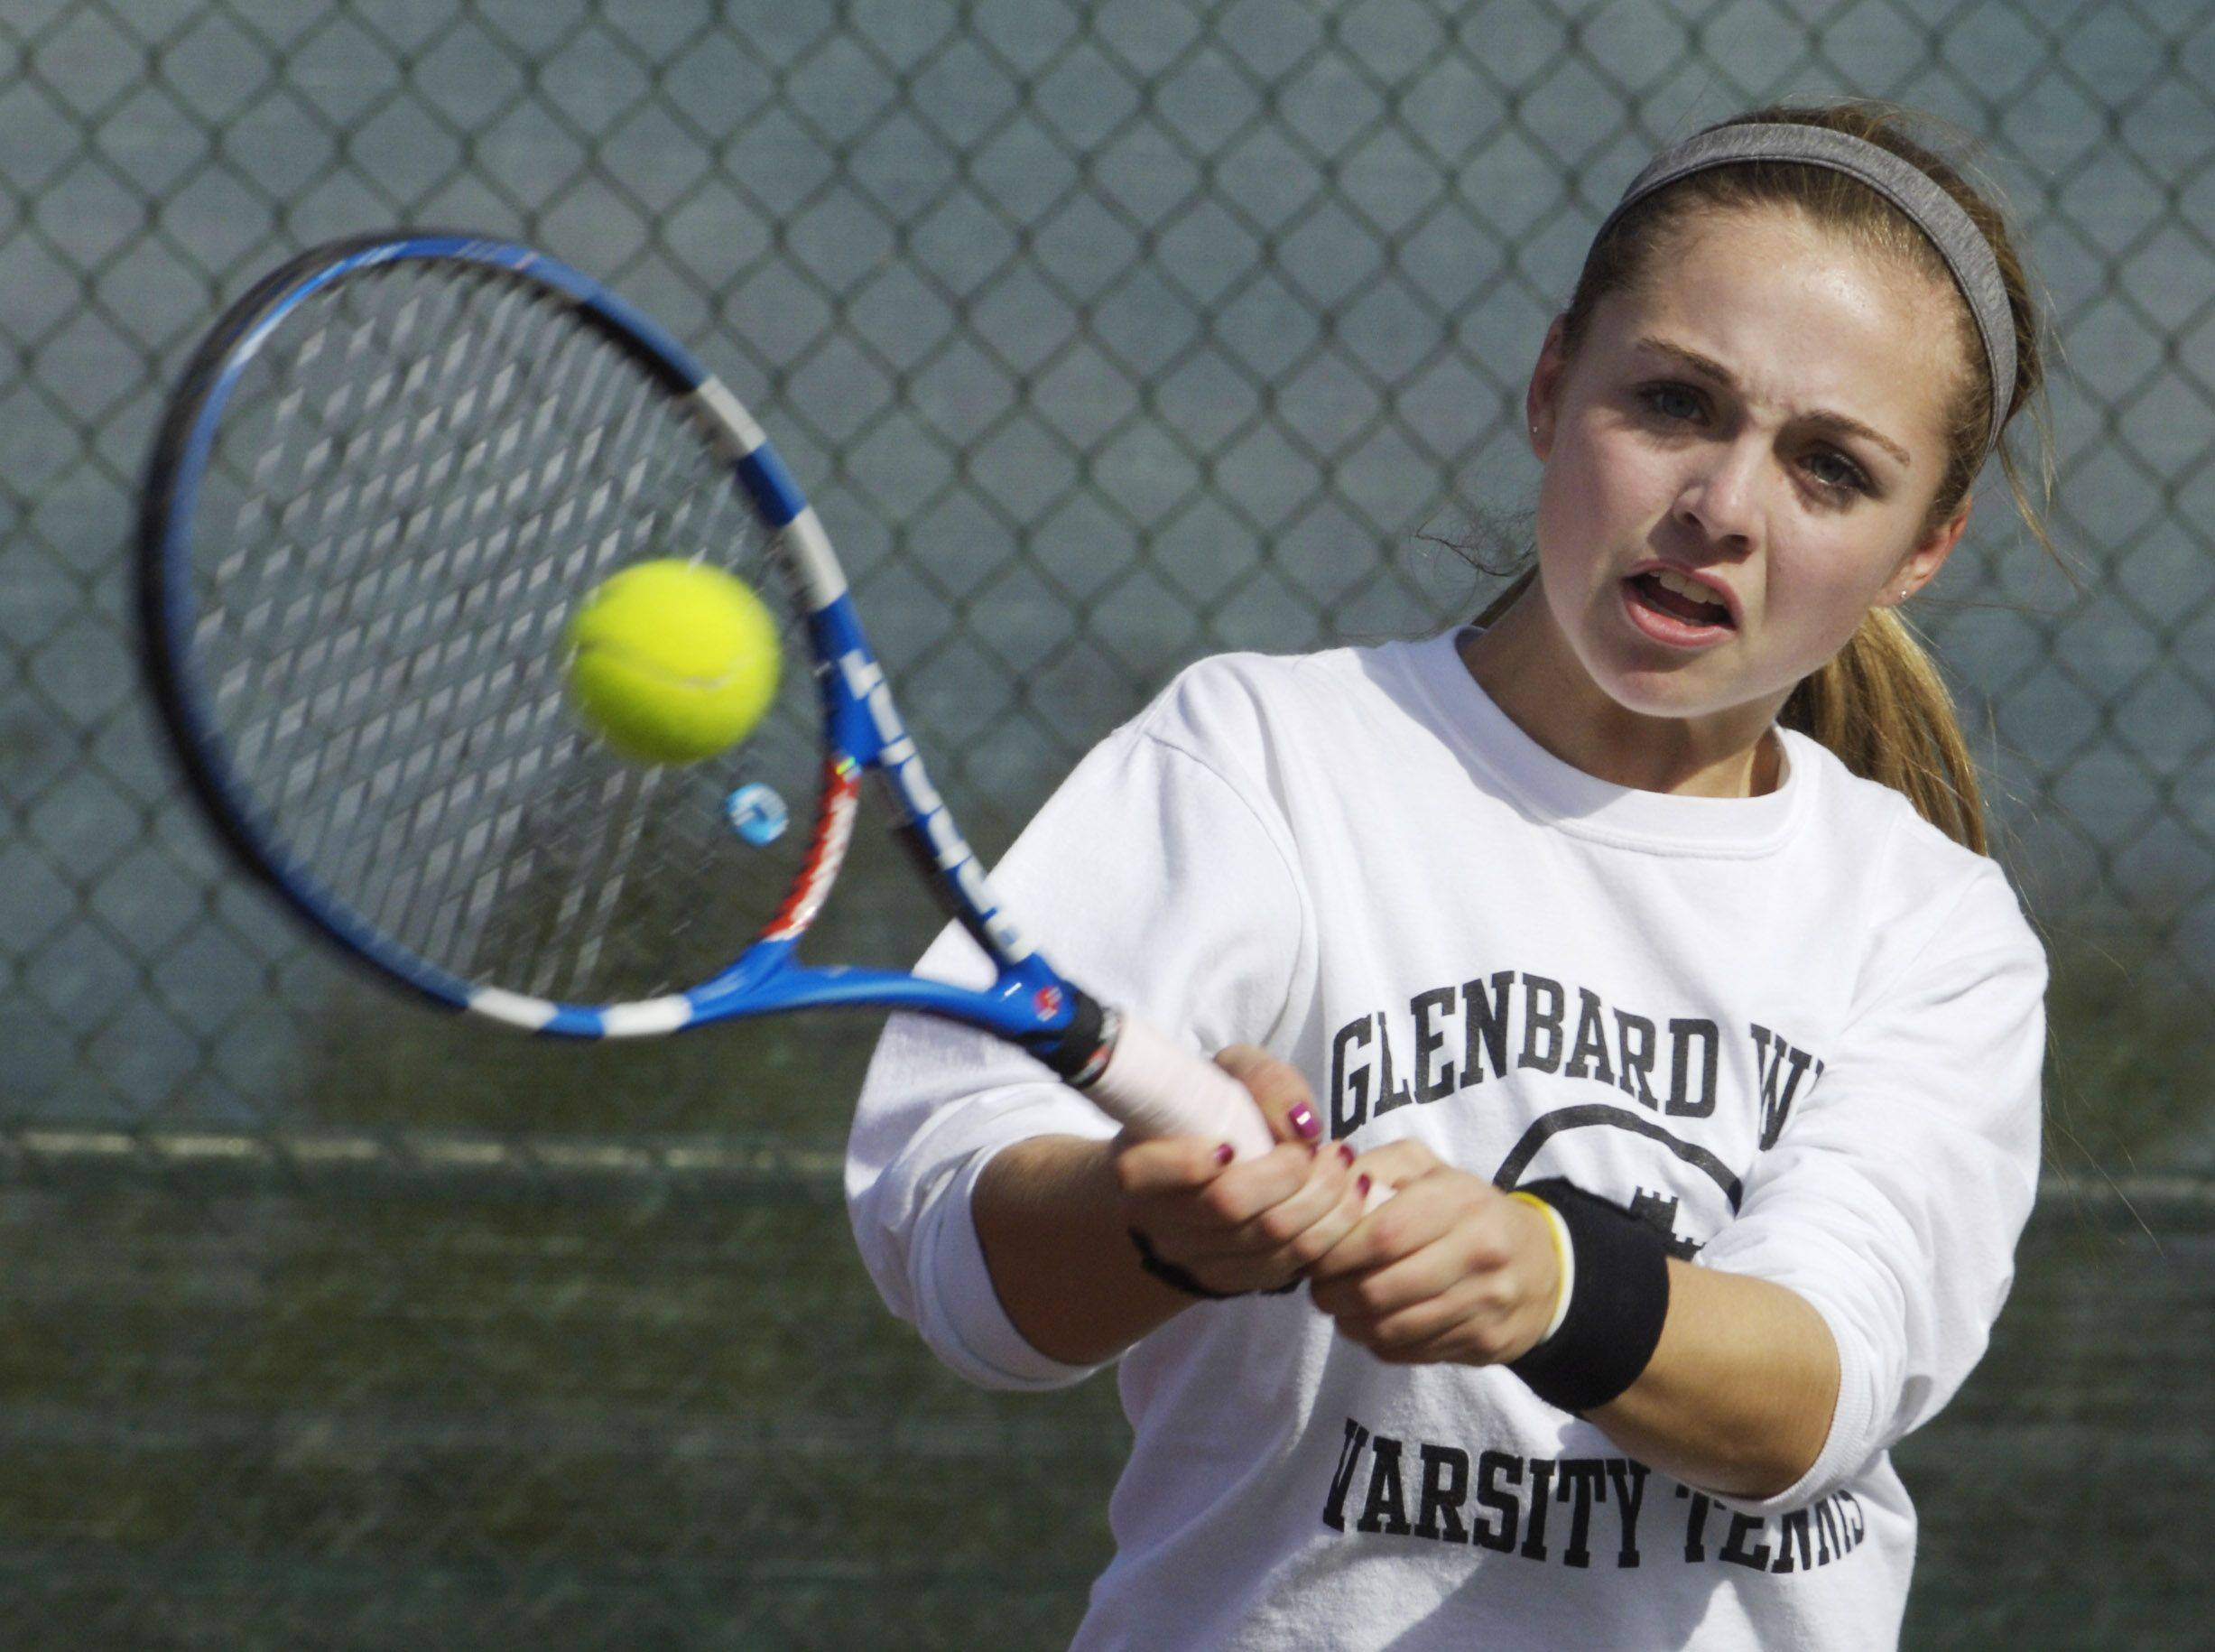 JOE LEWNARD/jlewnard@dailyherald.com � Meredith Maltby of Glenbard West returns a volley during the state girls tennis tournament at Buffalo Grove High School Thursday.